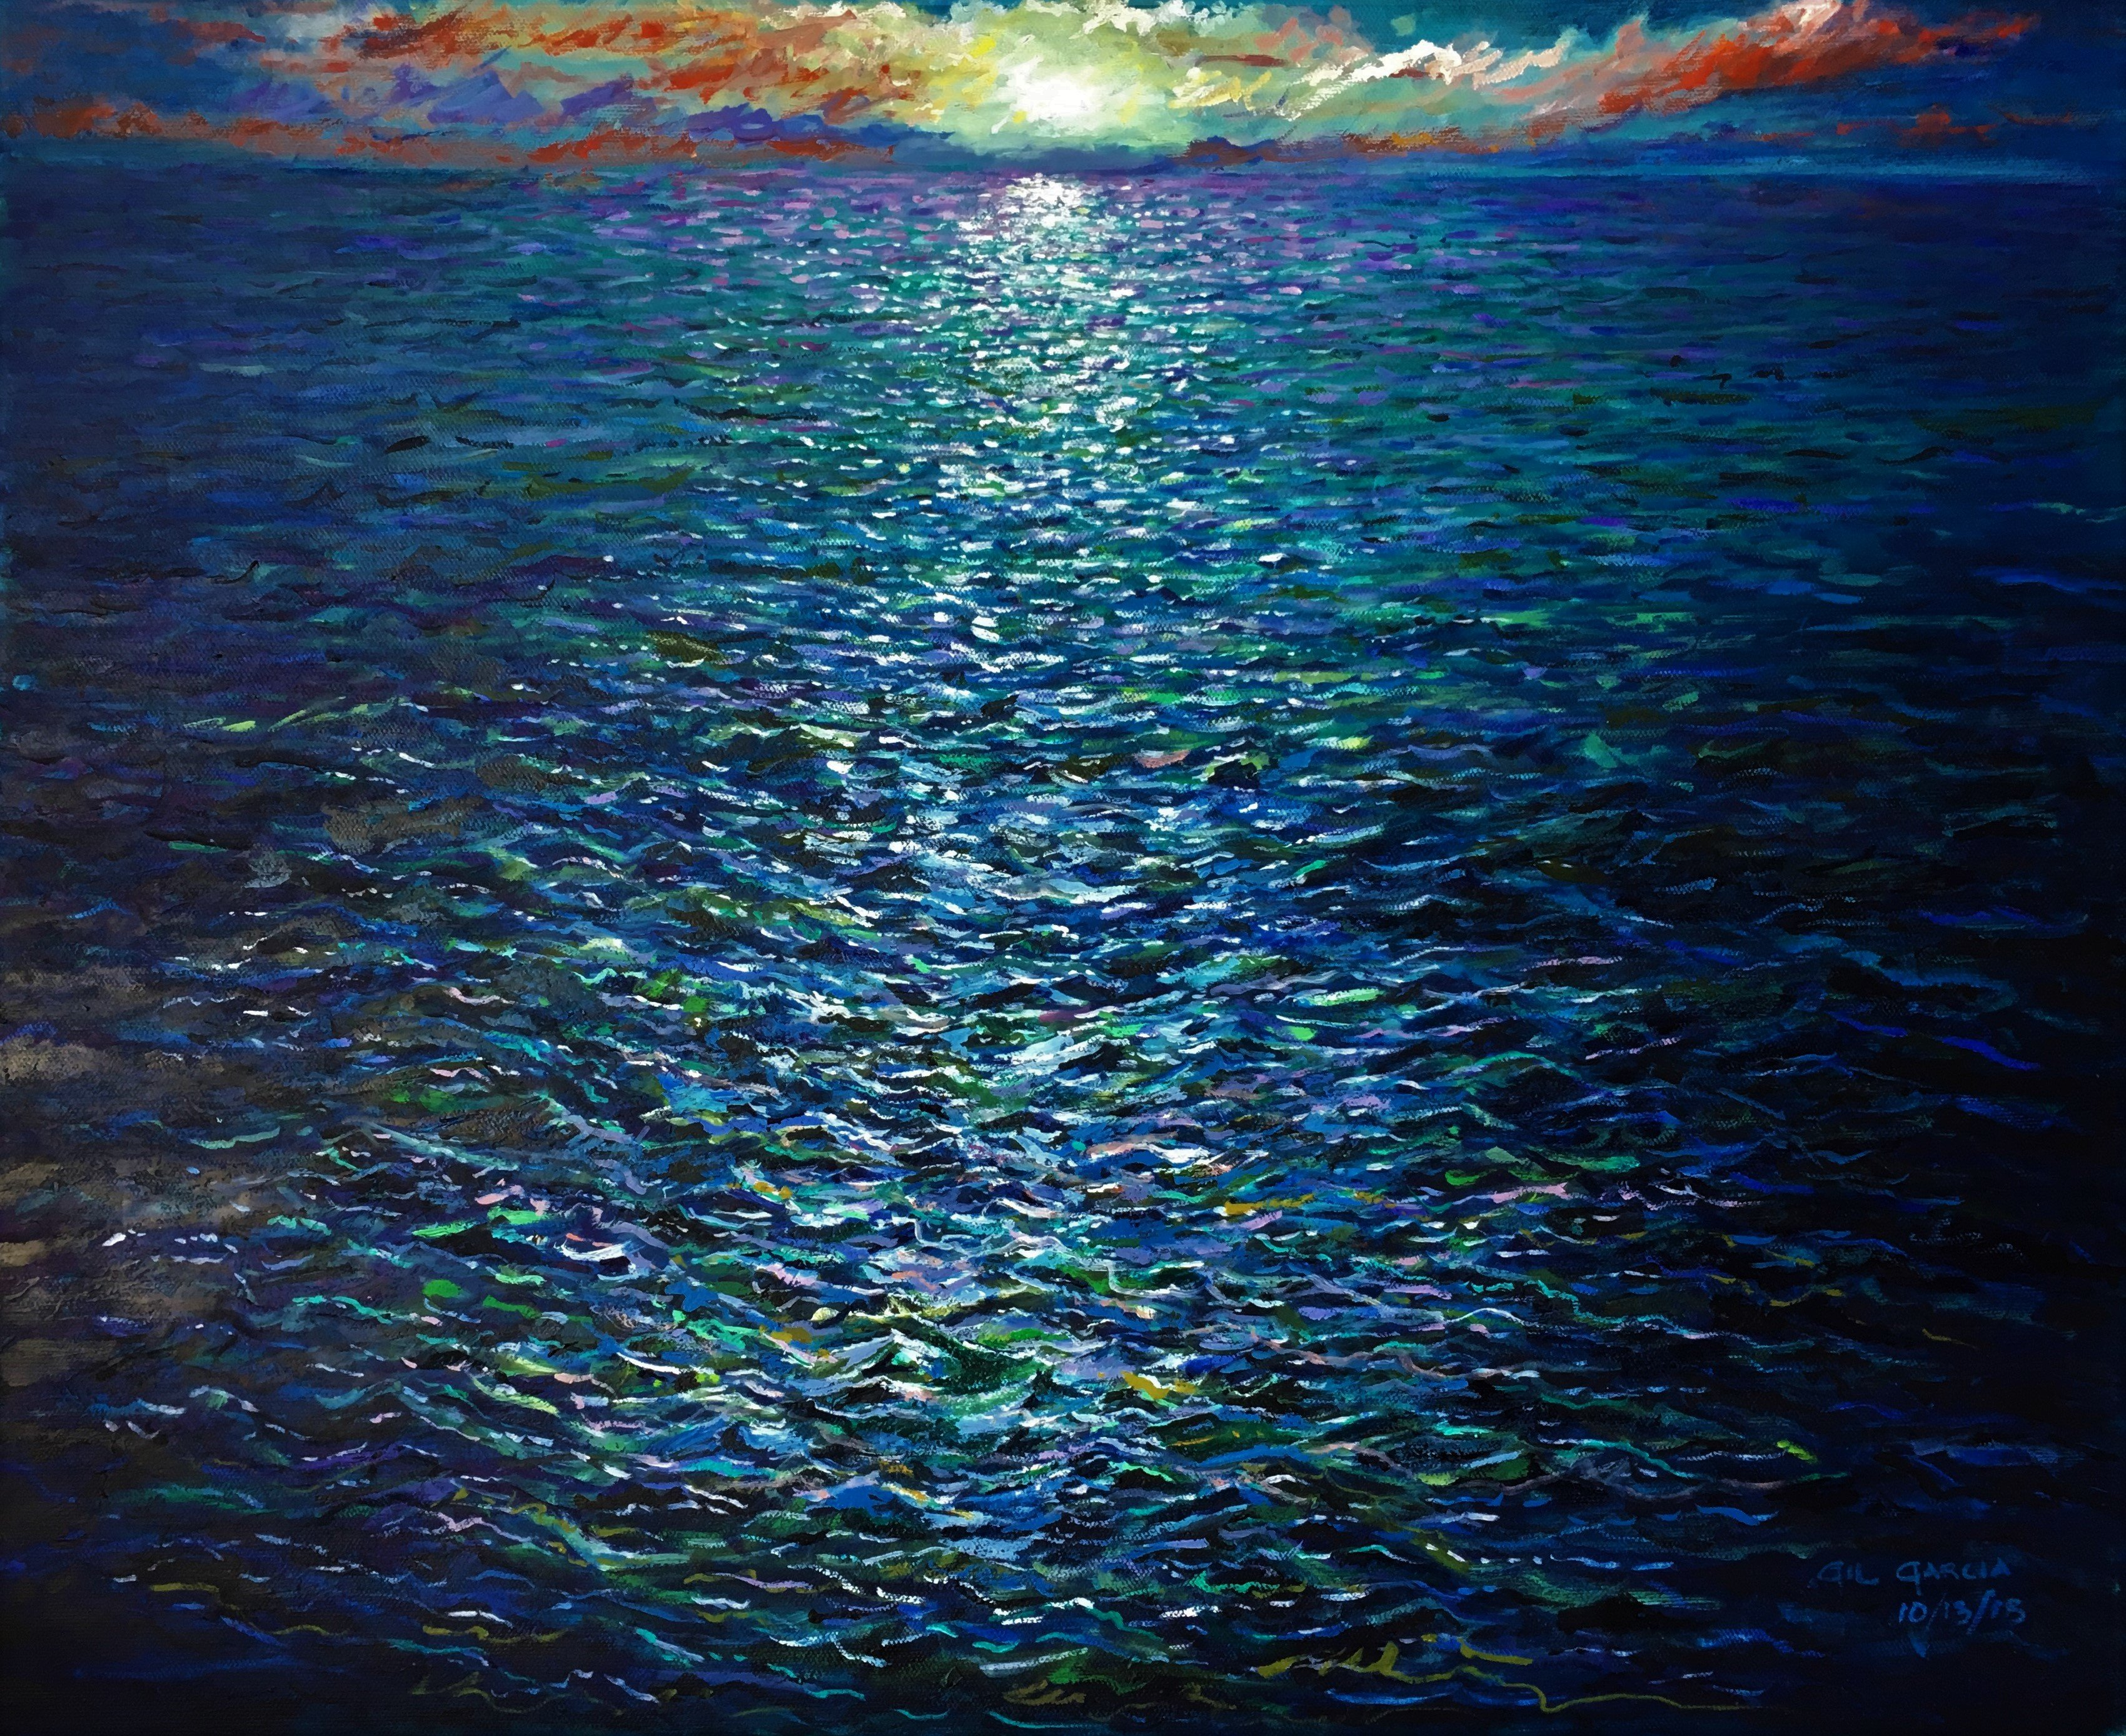 Gil Garcia; Deep Ocean Sunset, 2019, Original Painting Oil, 20 x 16 inches. Artwork description: 241 An impressionistic look at a Deep Ocean Sunset in blues, whites, and greens. ...